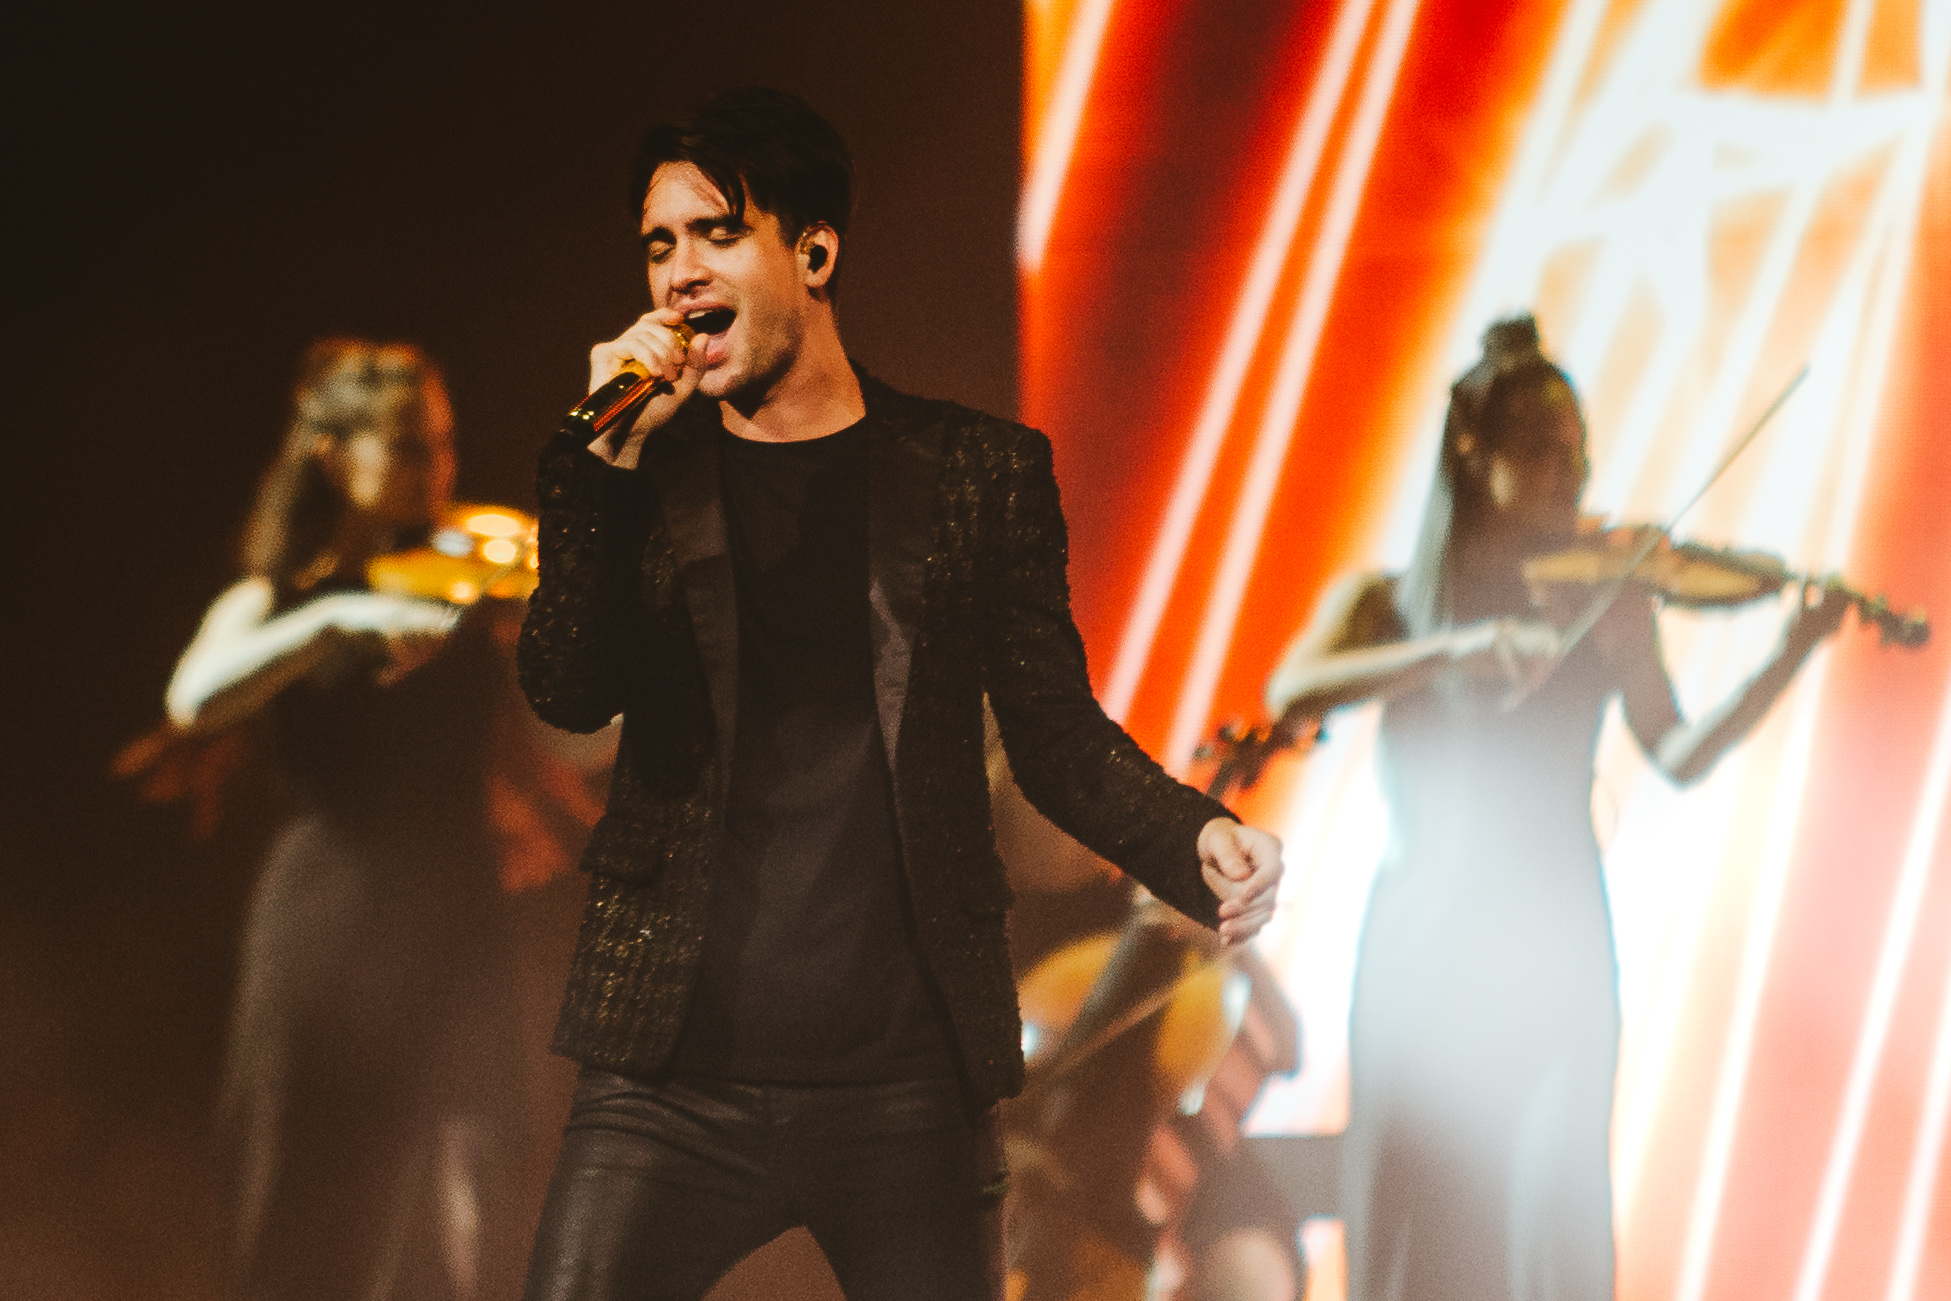 1_Panic!_At_The_Disco-Rogers_Arena-Timothy_Nguyen-20180811-17.jpg